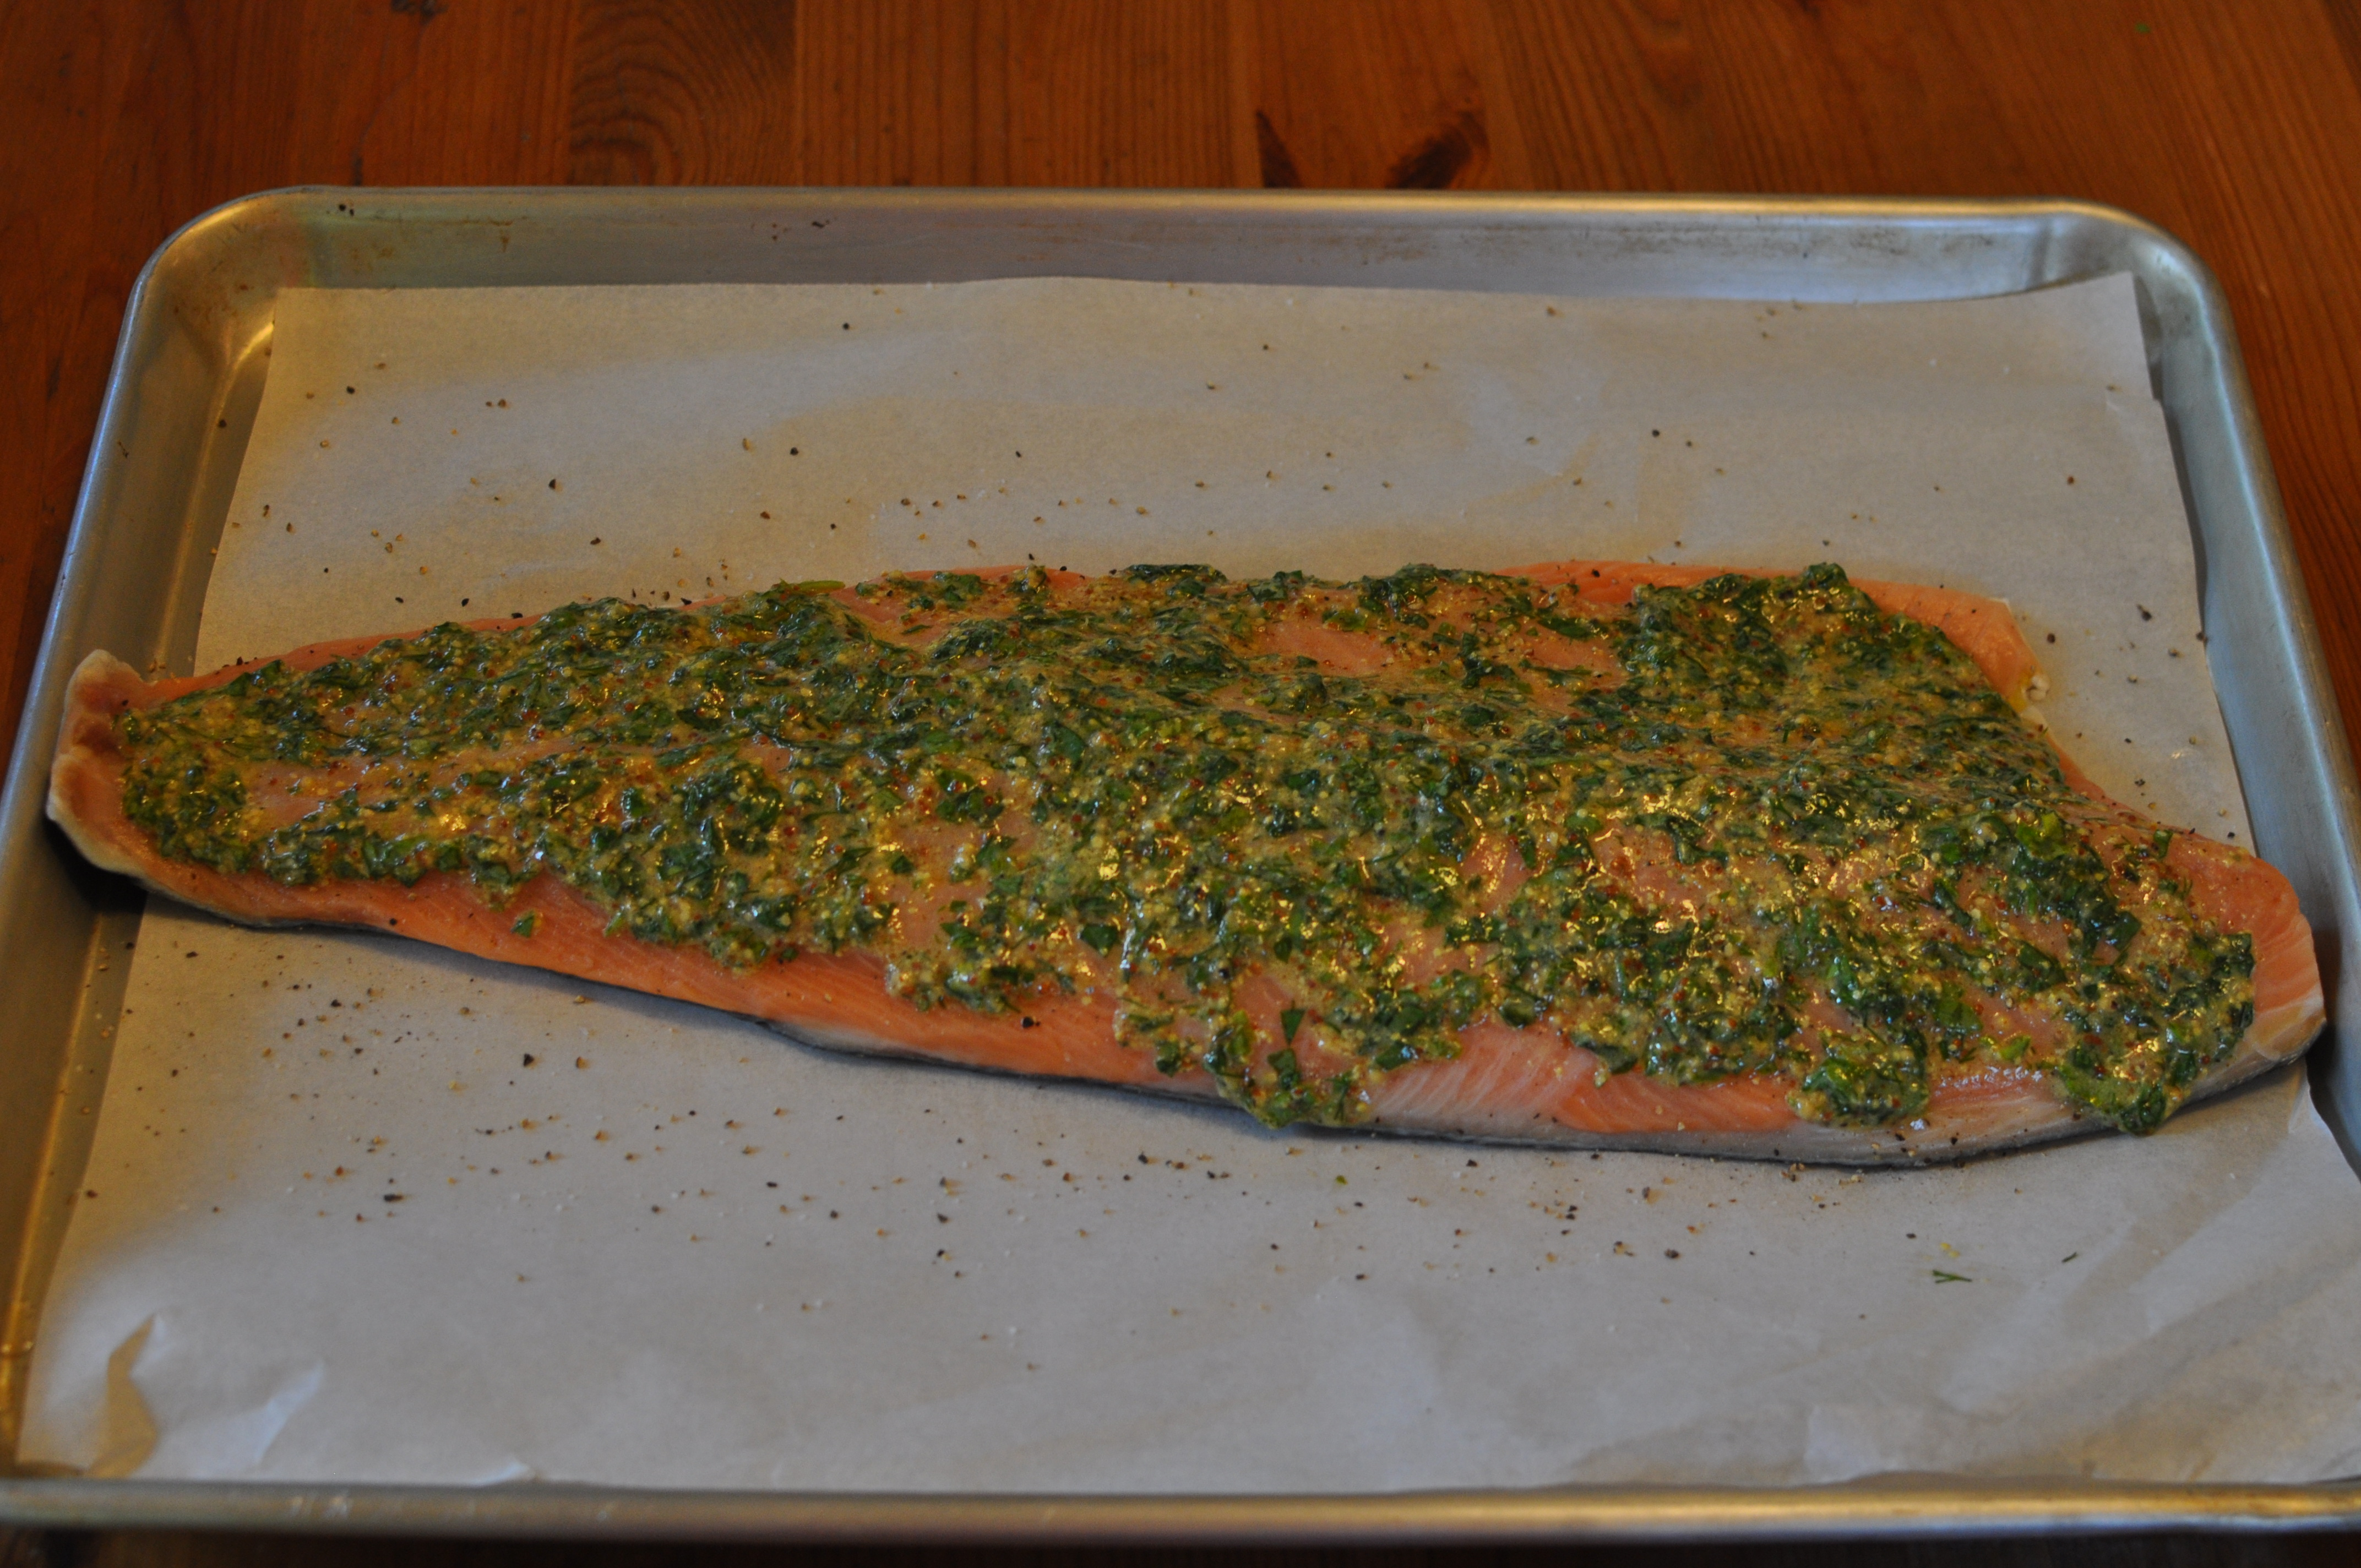 Roasted Salmon with Lemon and Herbs